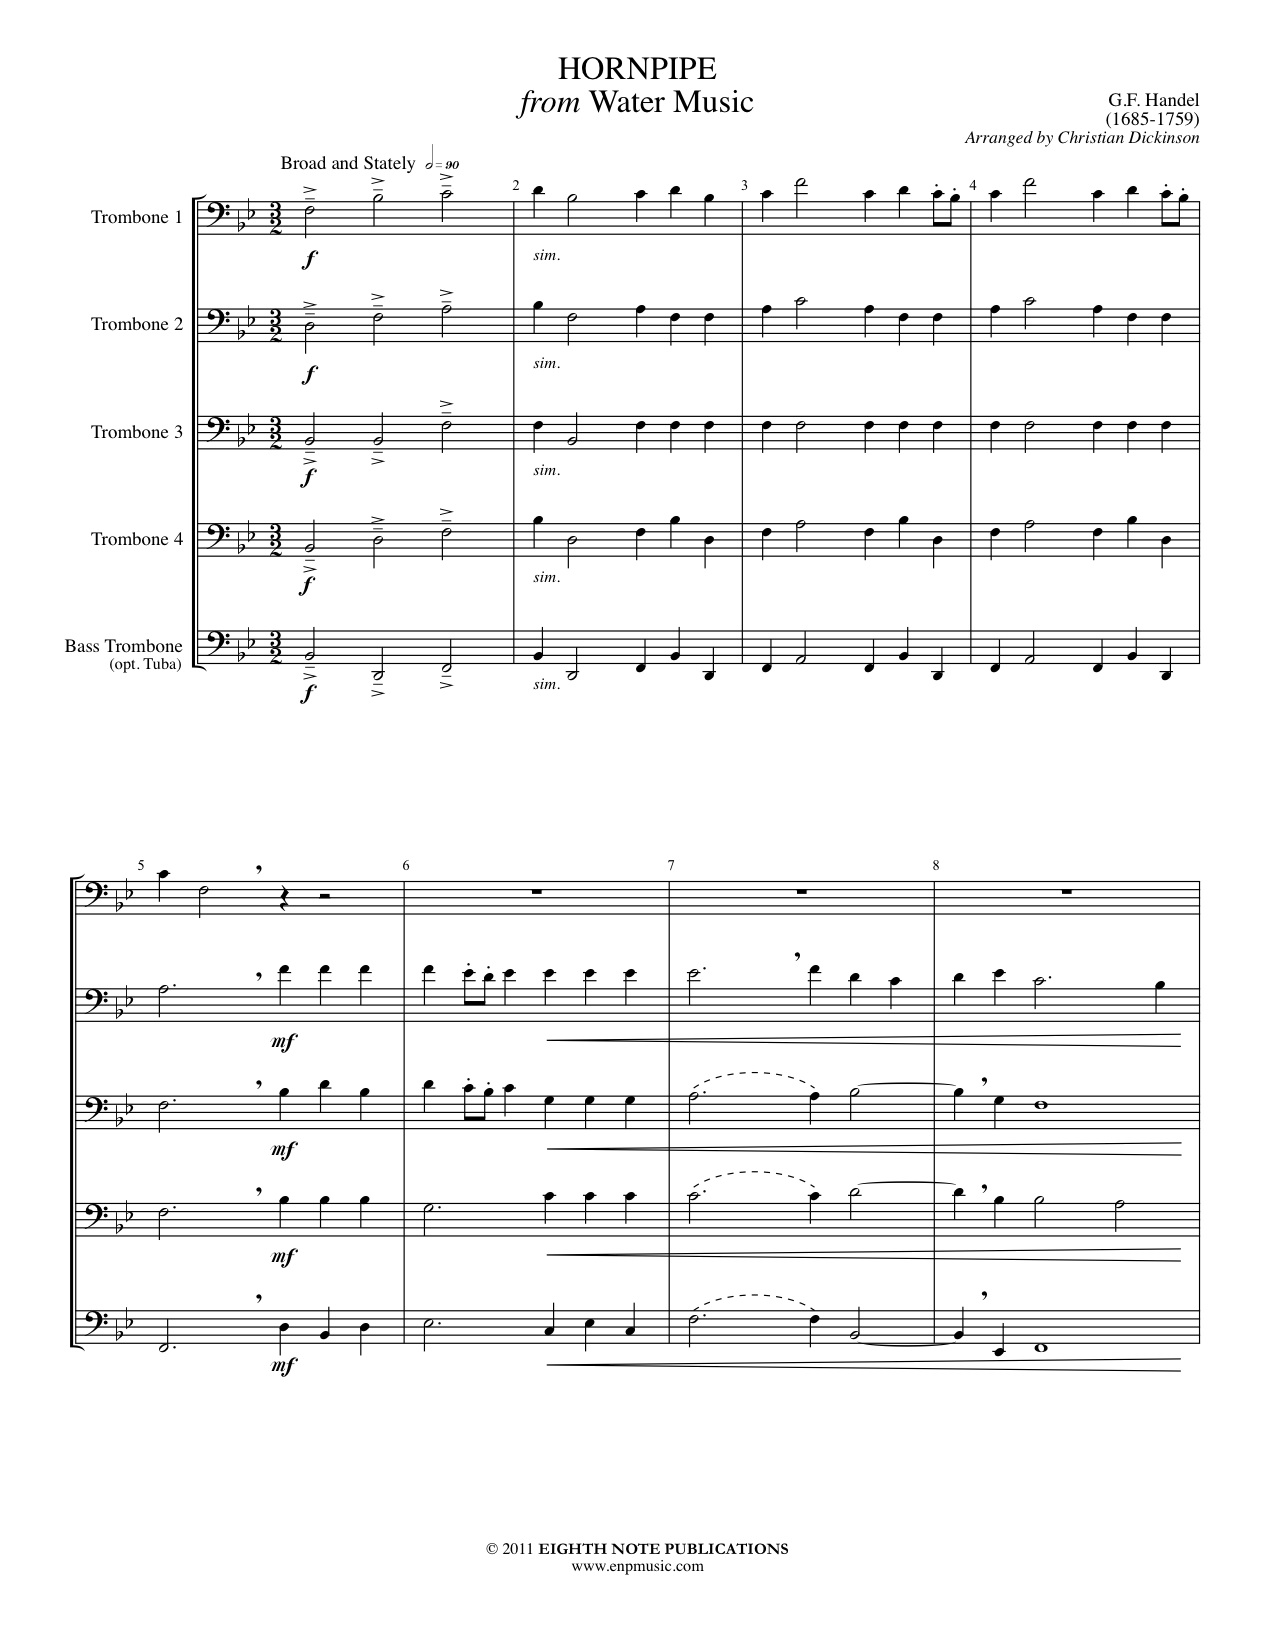 Hornpipe from Water Music for 5 Trombones - George Frederic